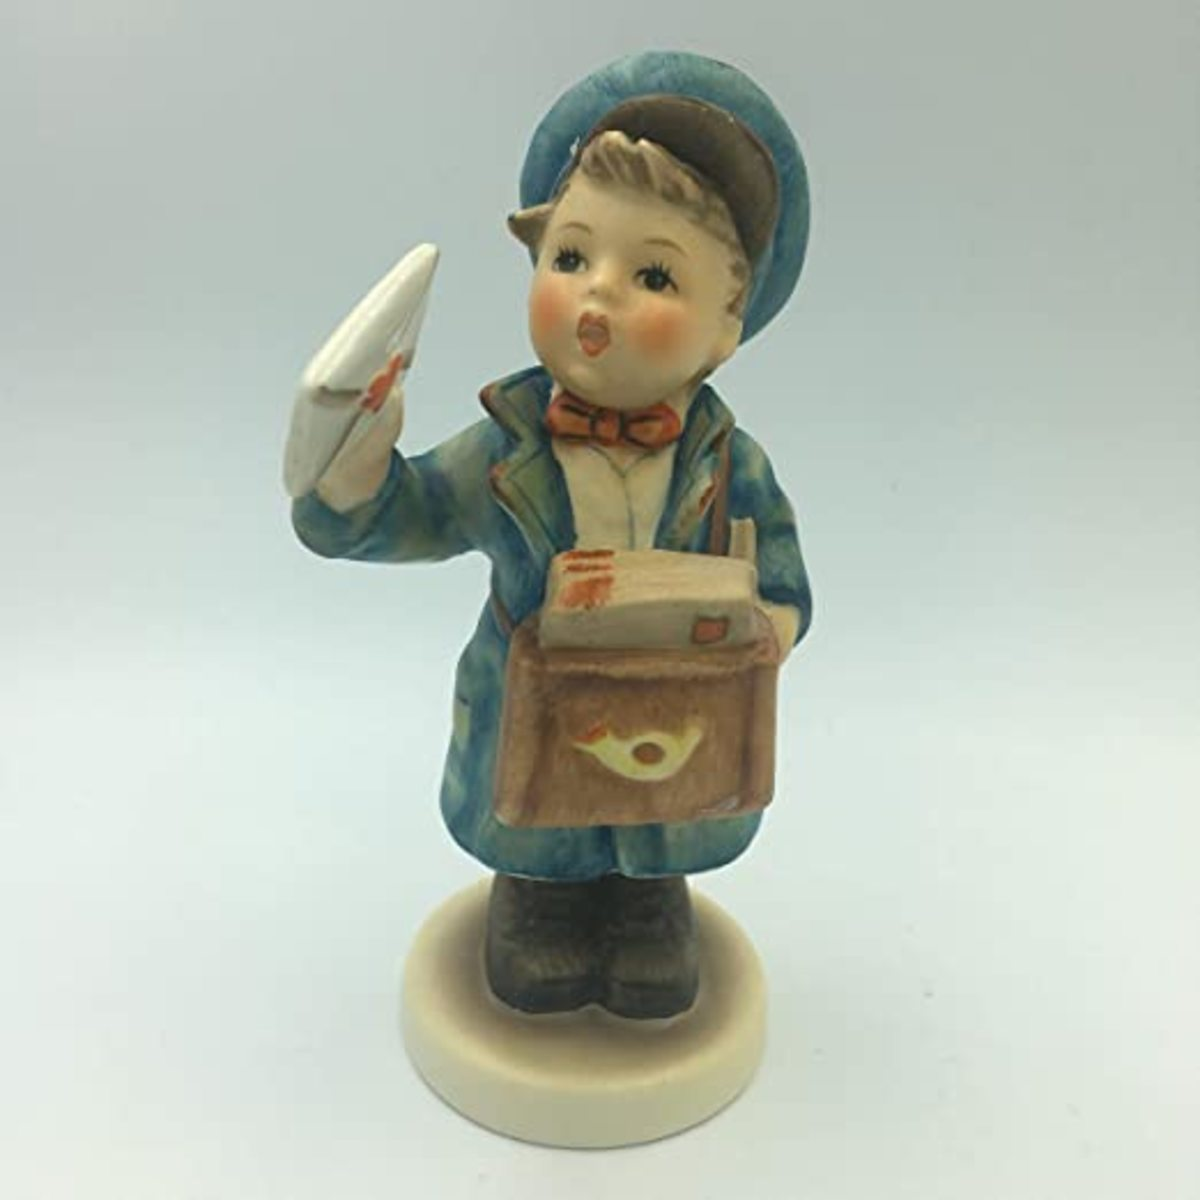 In 1935, Hummel porcelain figurines—based on the paintings of Sister Maria Innocentia Hummel, a German Franciscan nun—were being sold for the first time at American retailers like Marshall Field & Co. of Chicago.